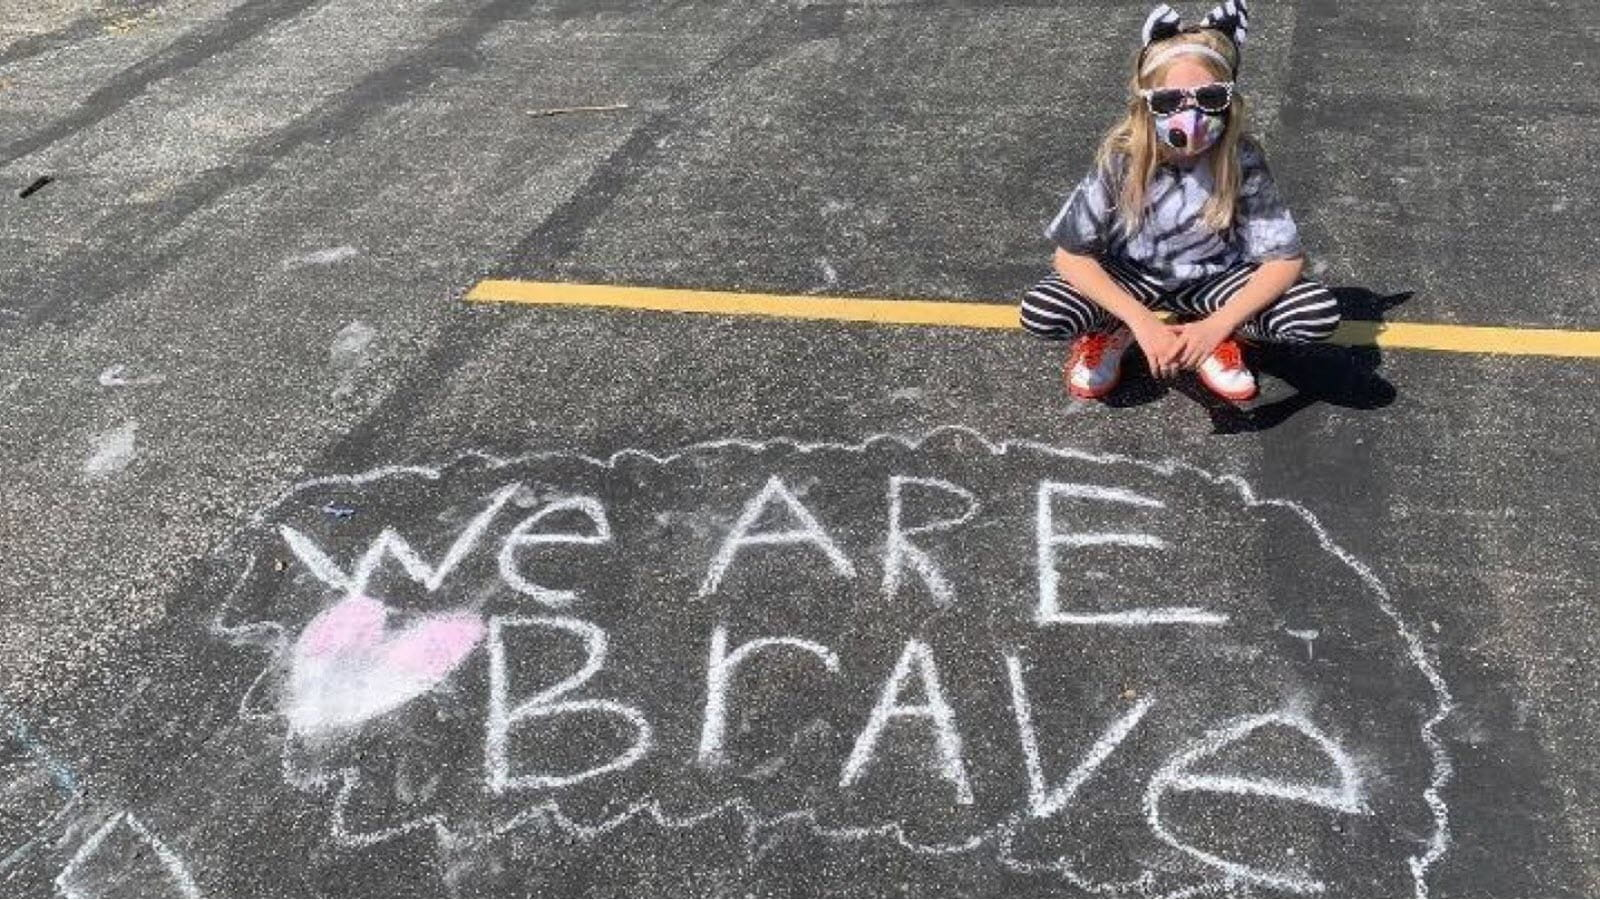 Little girl dressed in zebra attire with a chalk sign that says We Are Brave